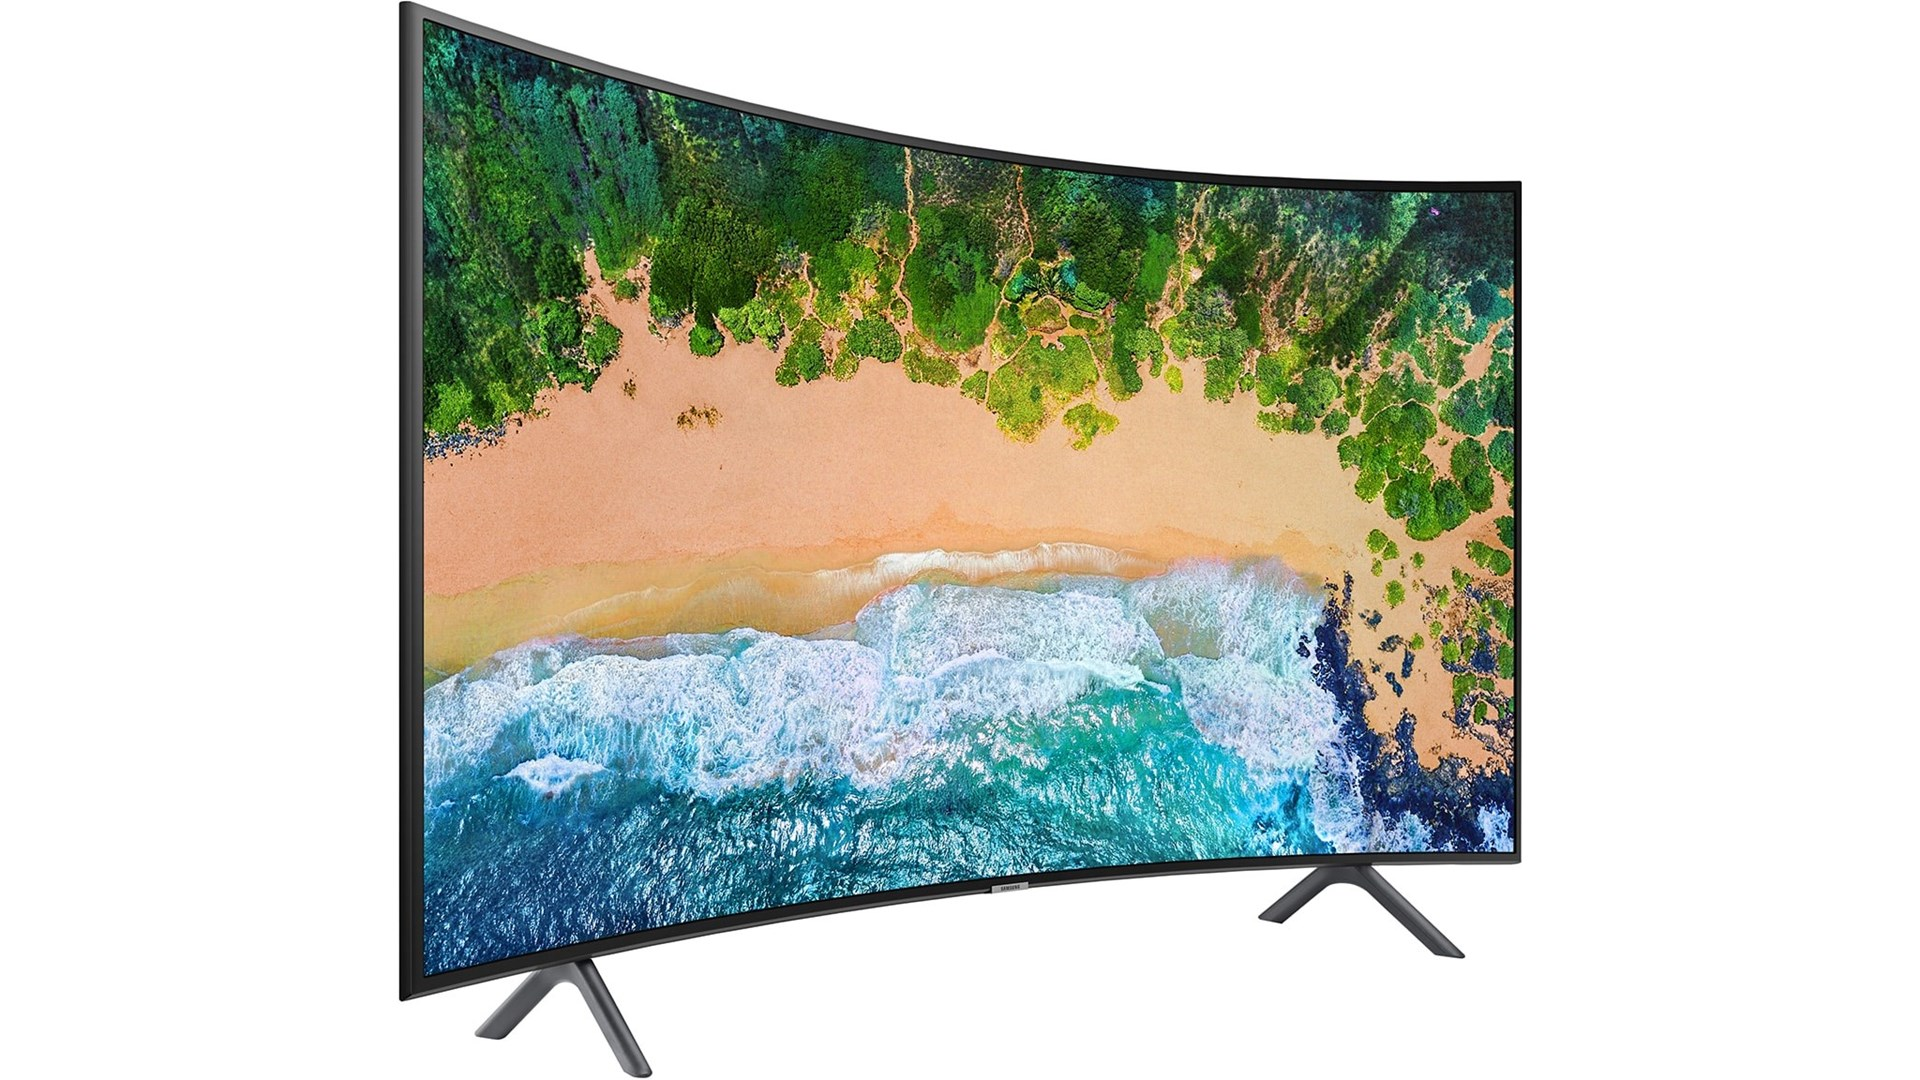 The best cheap TV sales and 4K TV deals in the UK - March 2019